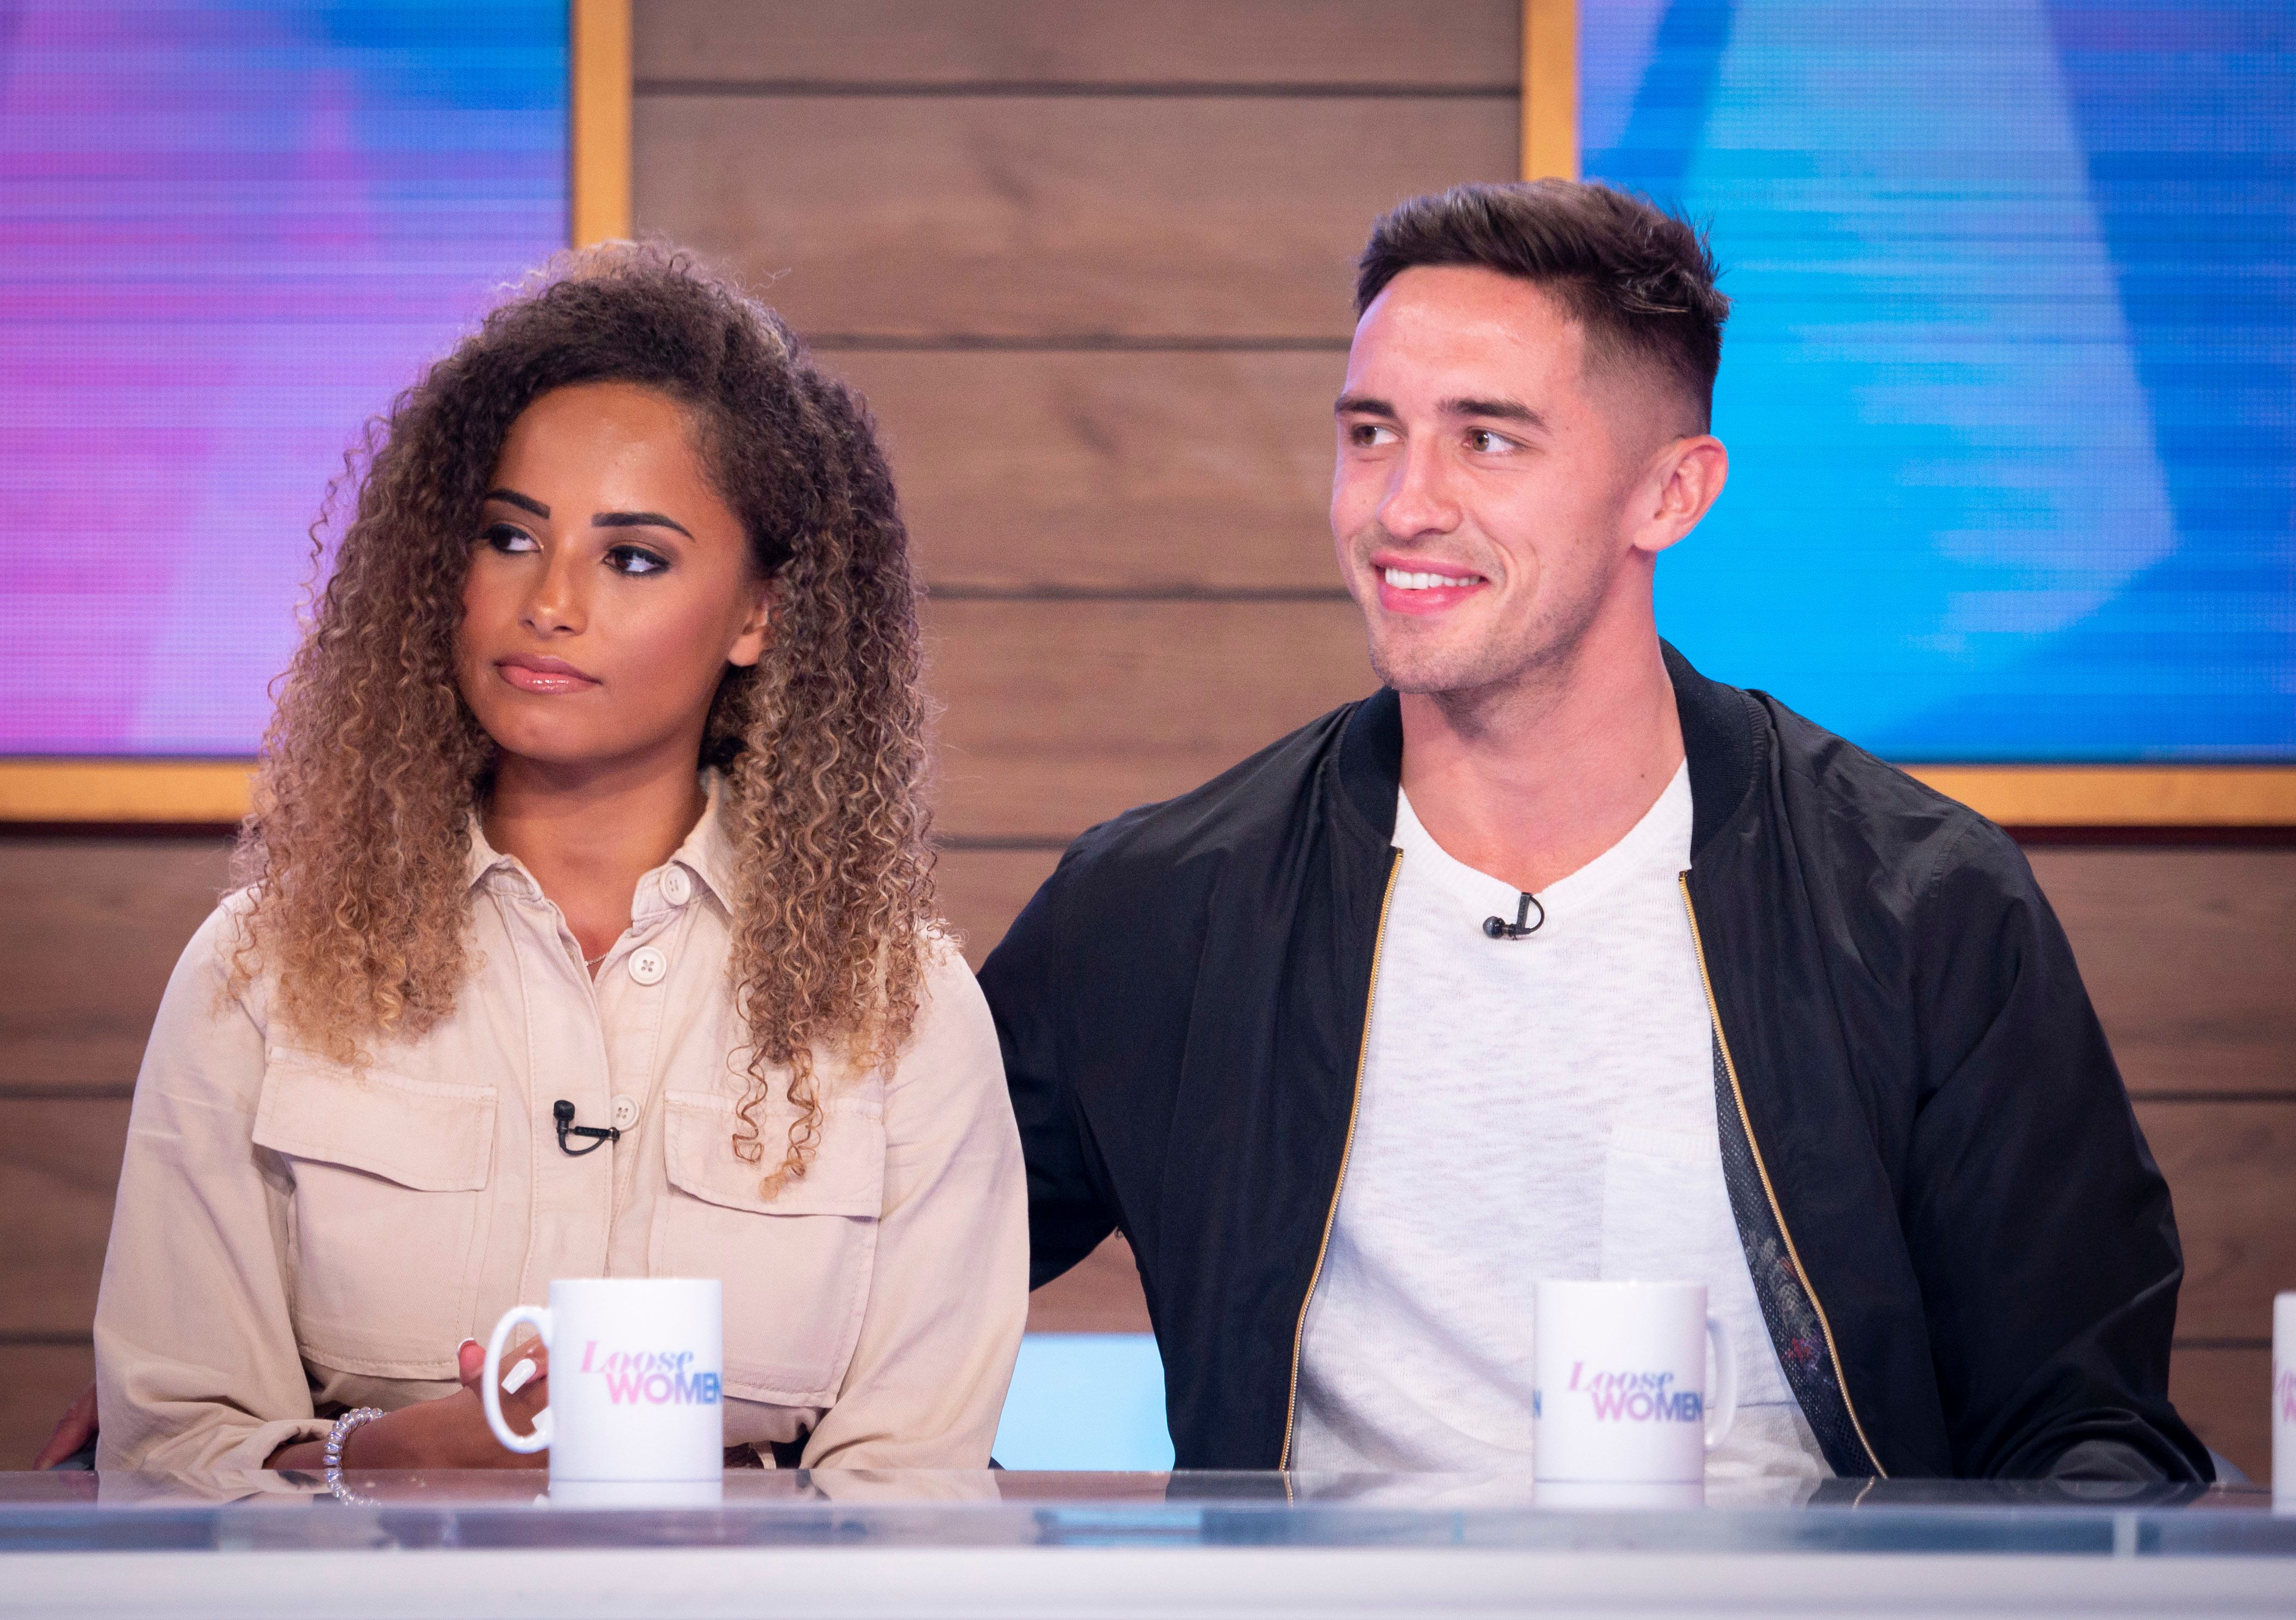 Love Island couple share where it went wrong for Amber Gill and Greg O'Shea